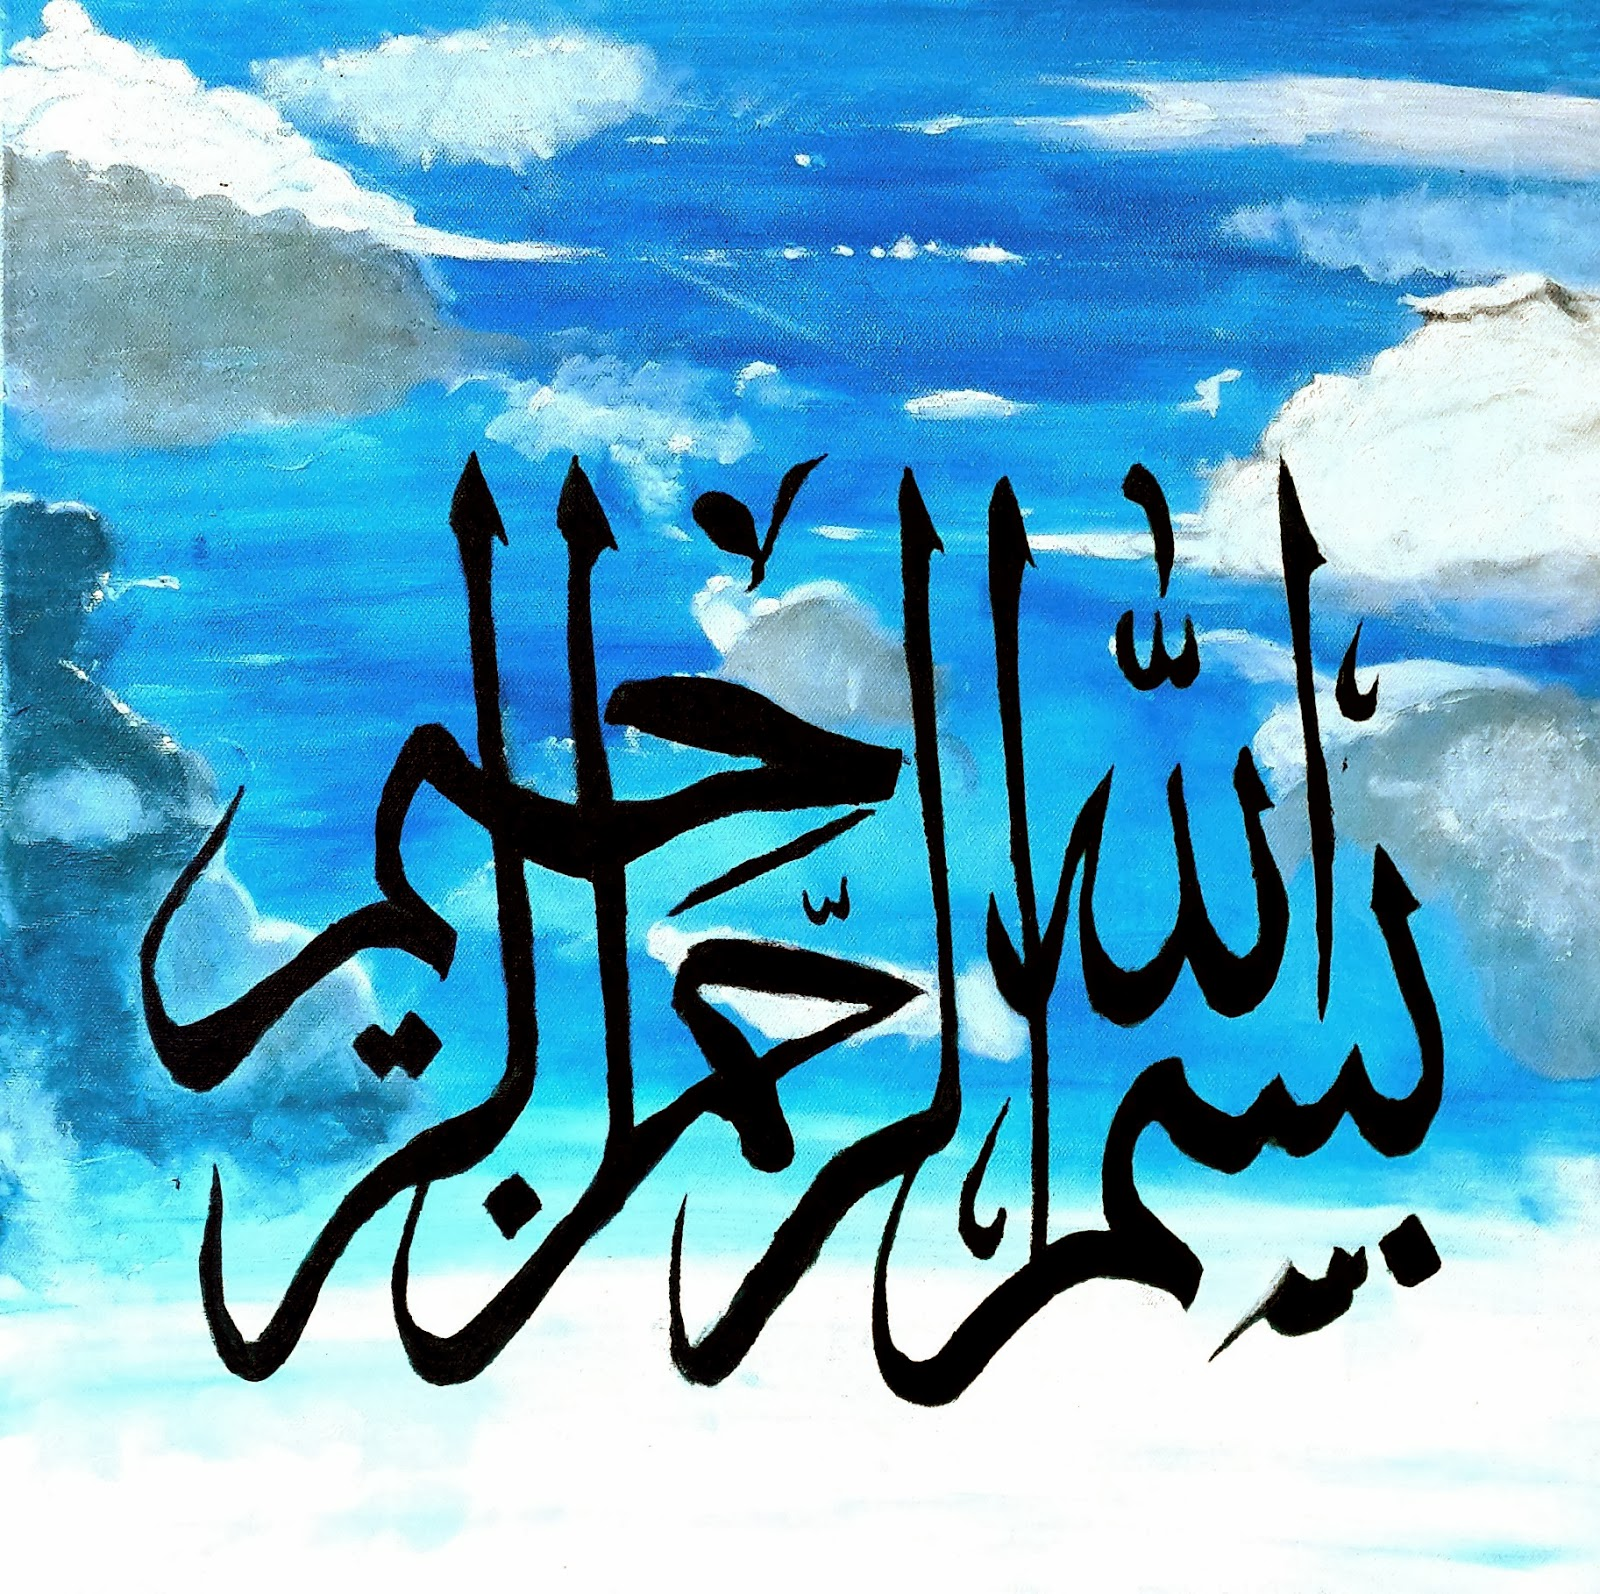 in the name of allah the The 99 names of allah (called asma ul husna in arabic), are the names of god which benefits: if a man suffering from poverty and starvation repeats this name frequently or keeps it with him written on a piece of paper or repeats this name 40 times in the last sajda if the chasht prayer, allah will relieve.